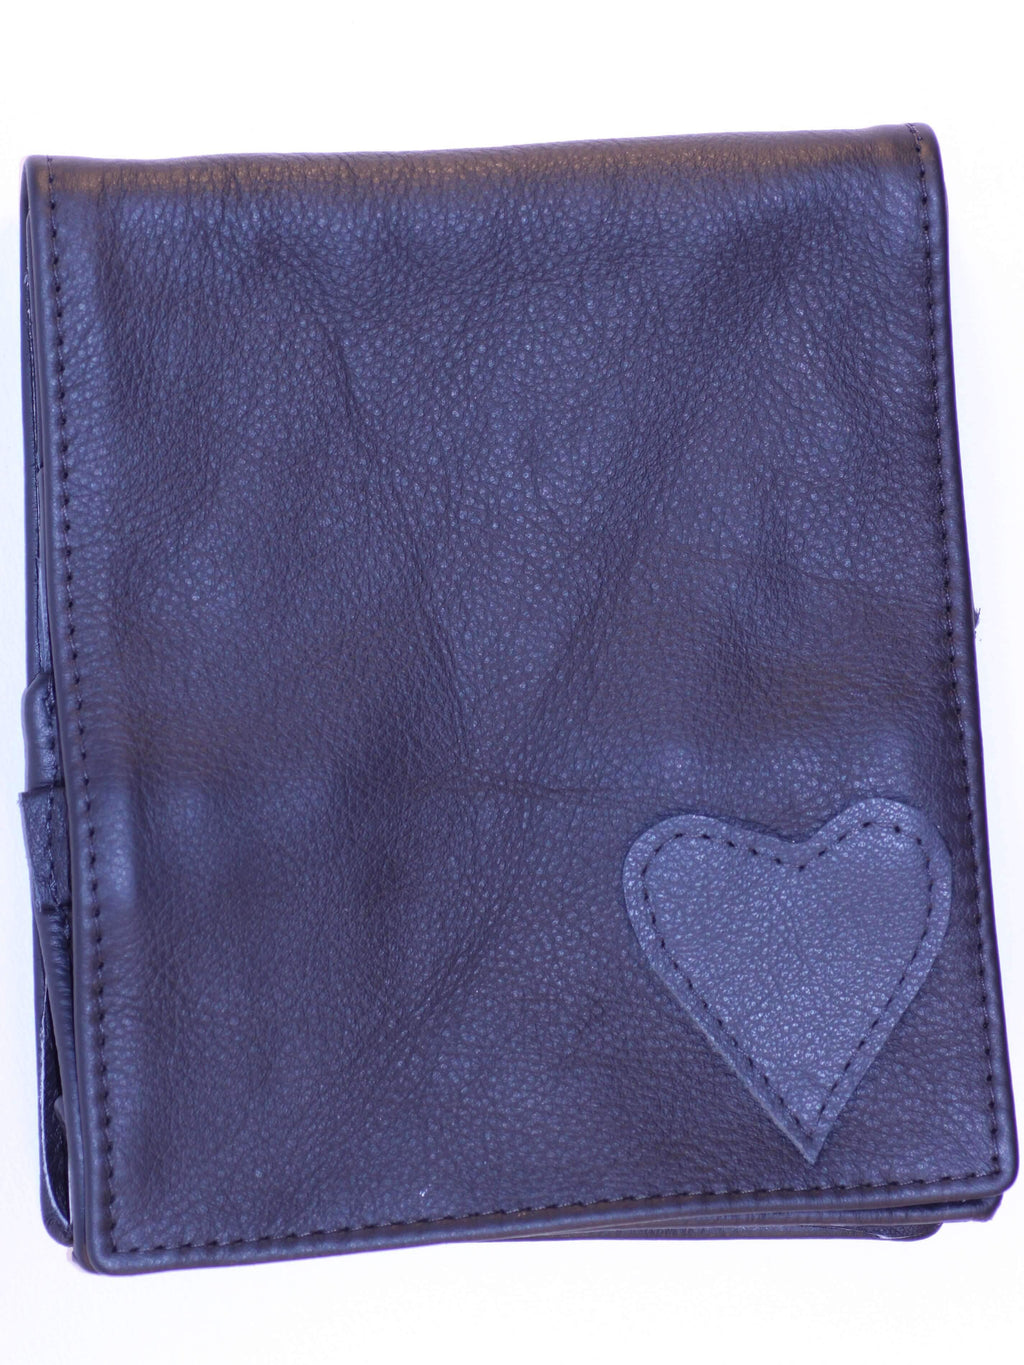 Leather Artisan Handmade leather scissor pouch heart